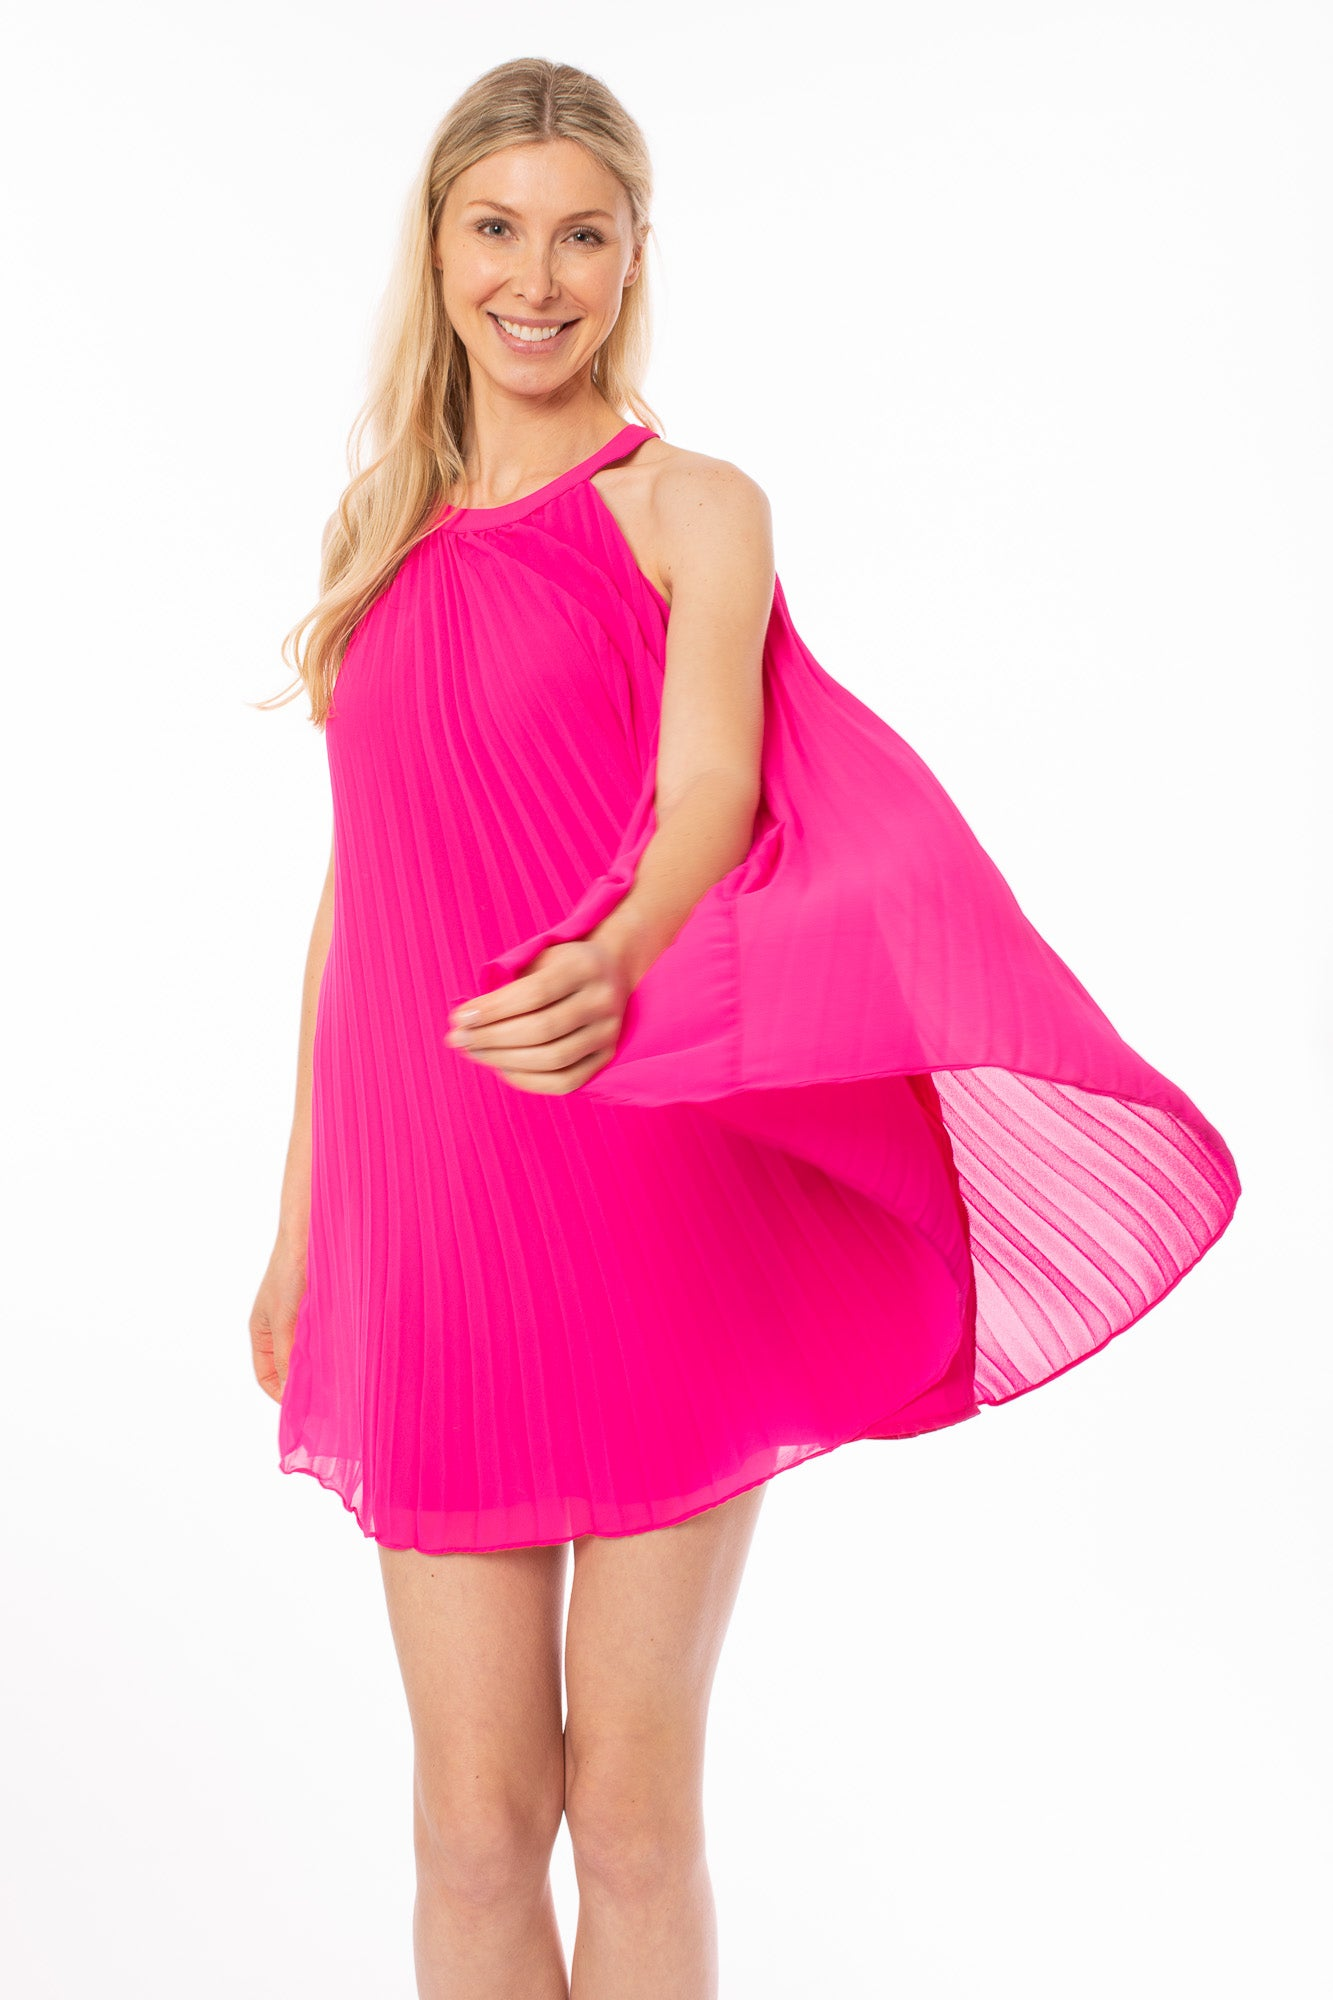 To The Loyal - Double Layered Pink Pleated Dress W/Neck Clasp (THS0786, Pink)